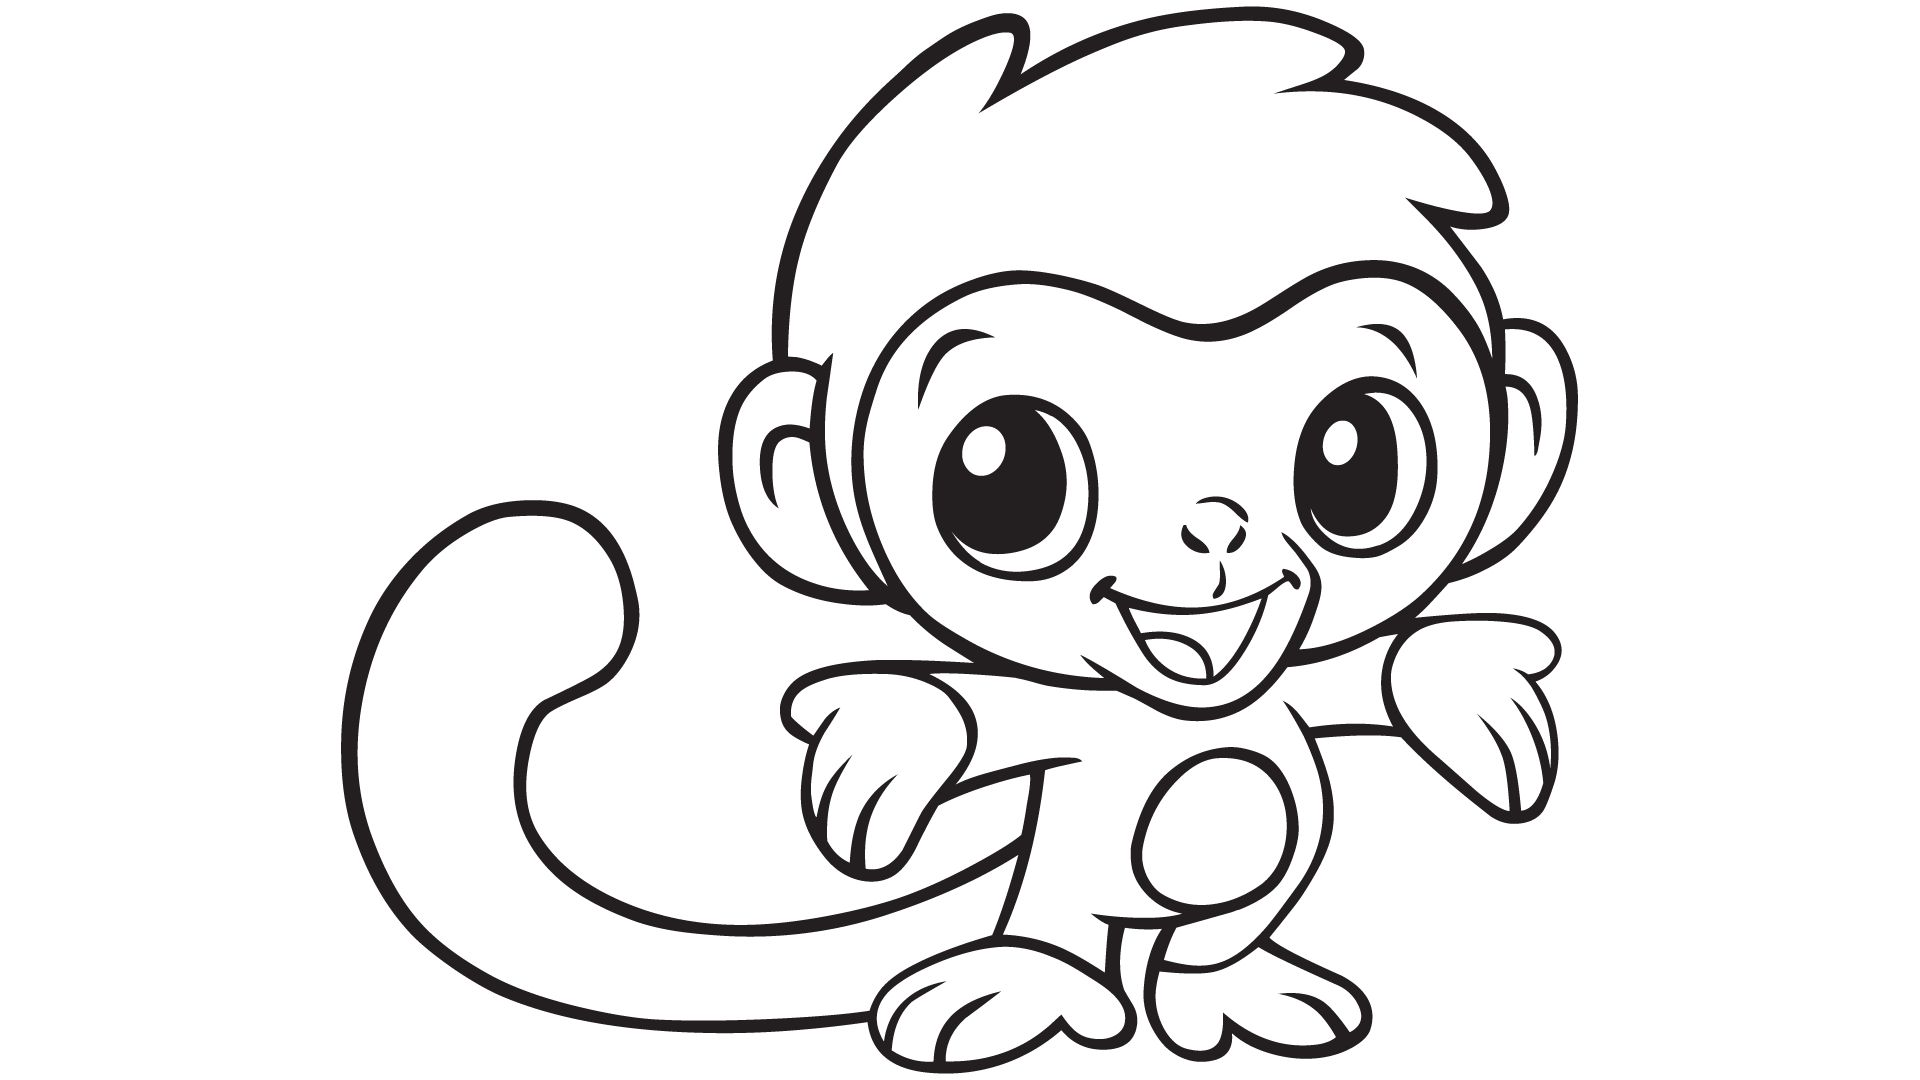 1920x1080 Baby Monkey Coloring Pages Printable